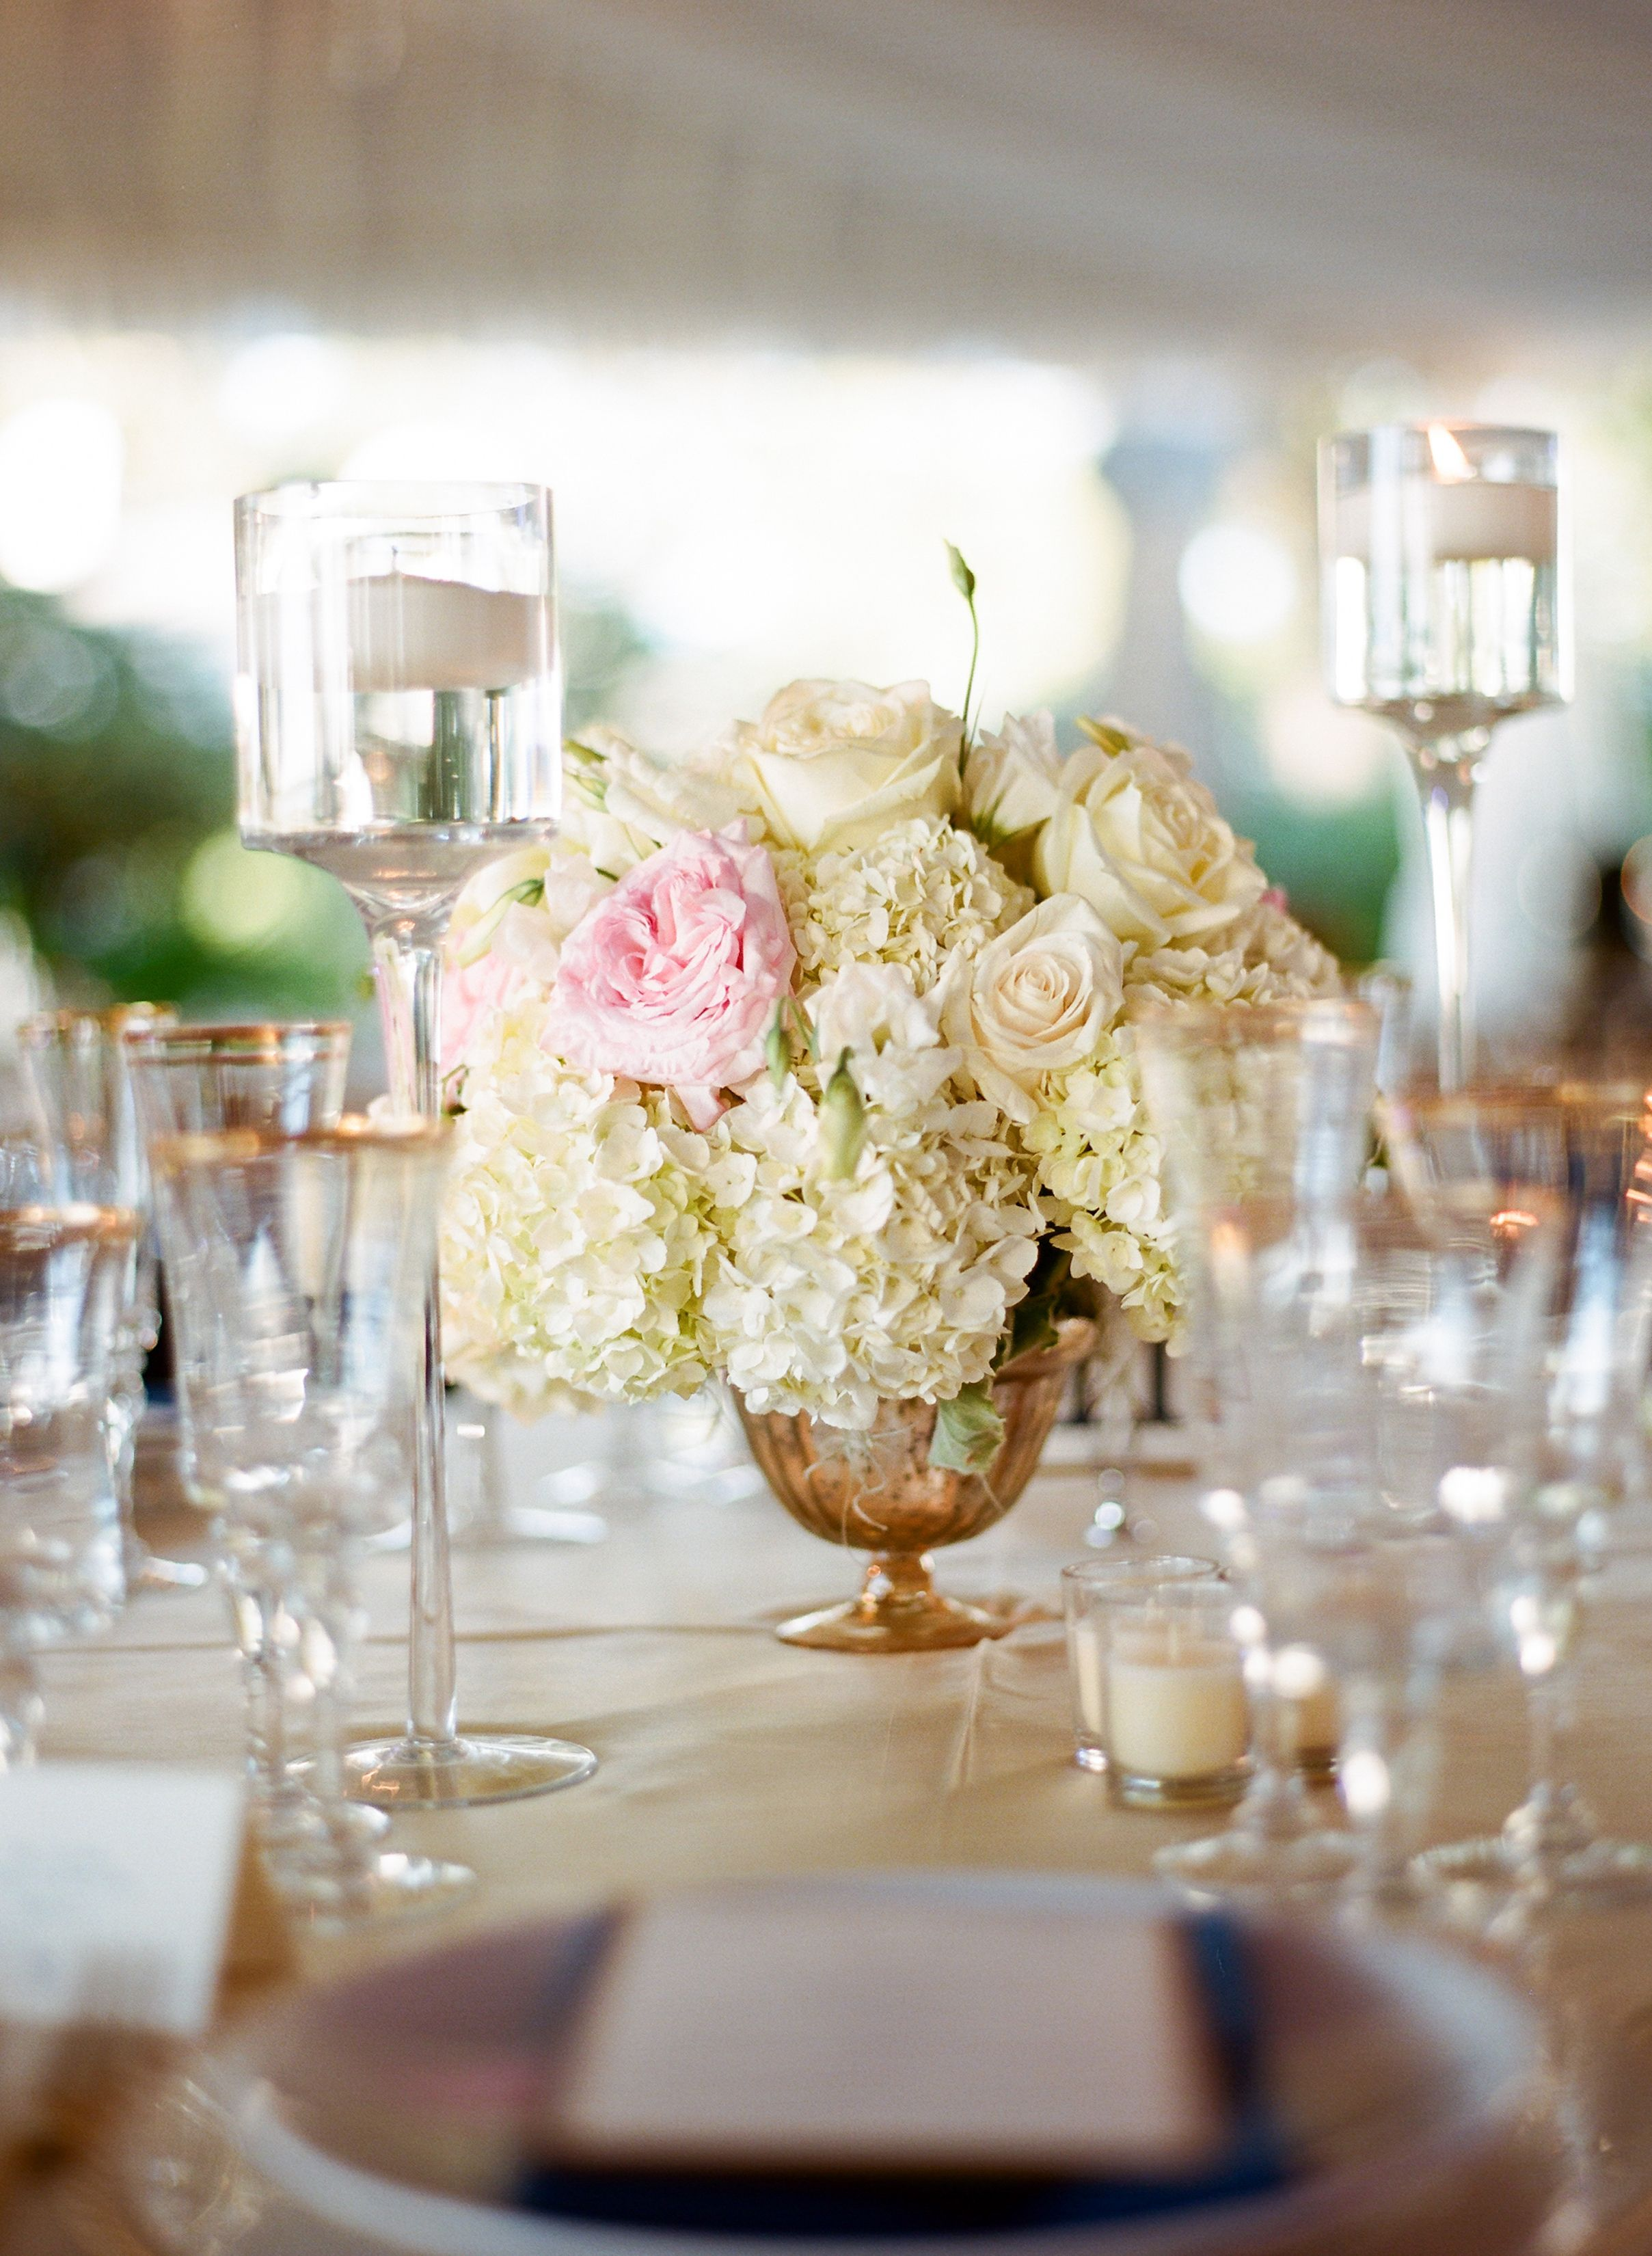 Gold Urn Centerpieces Filled with Ivory Arrangements | WEDDING ...